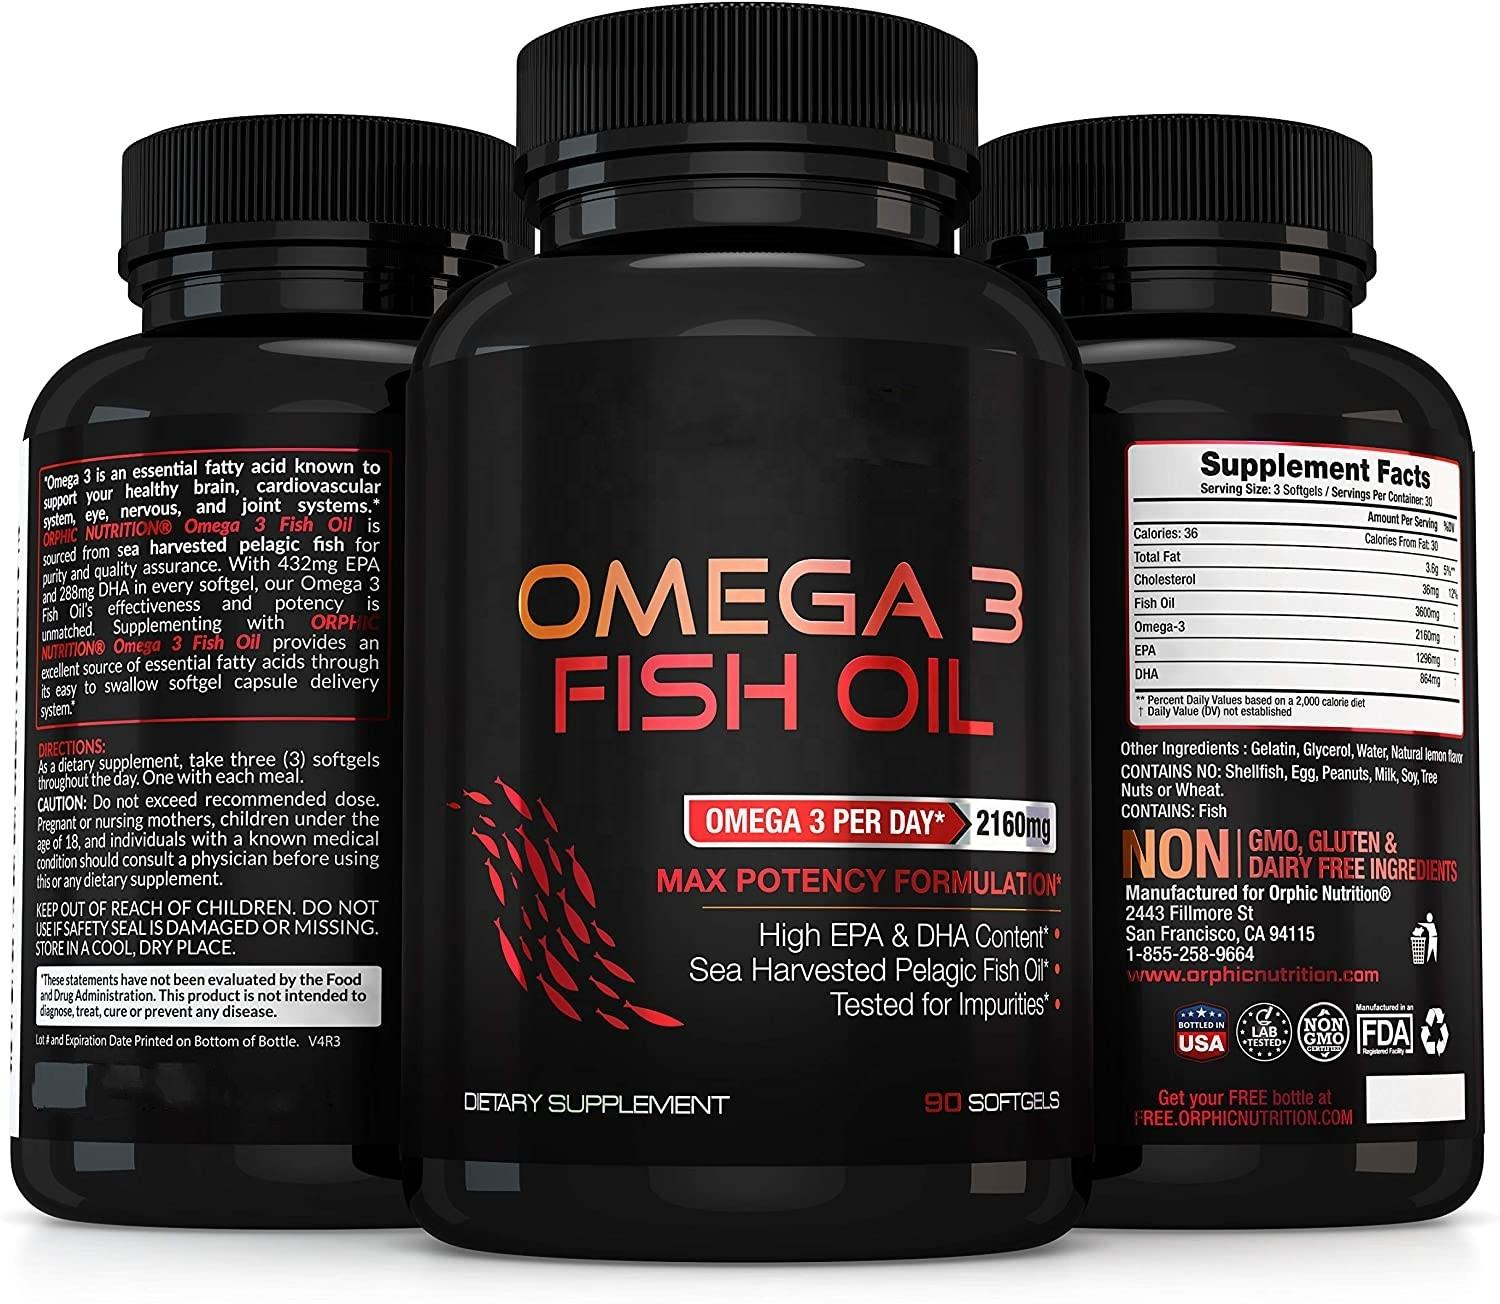 Omega 3 Fish Oil Supplements Max Potency Burpless Lemon Flavored Capsules Essential Fatty Acids Supplement